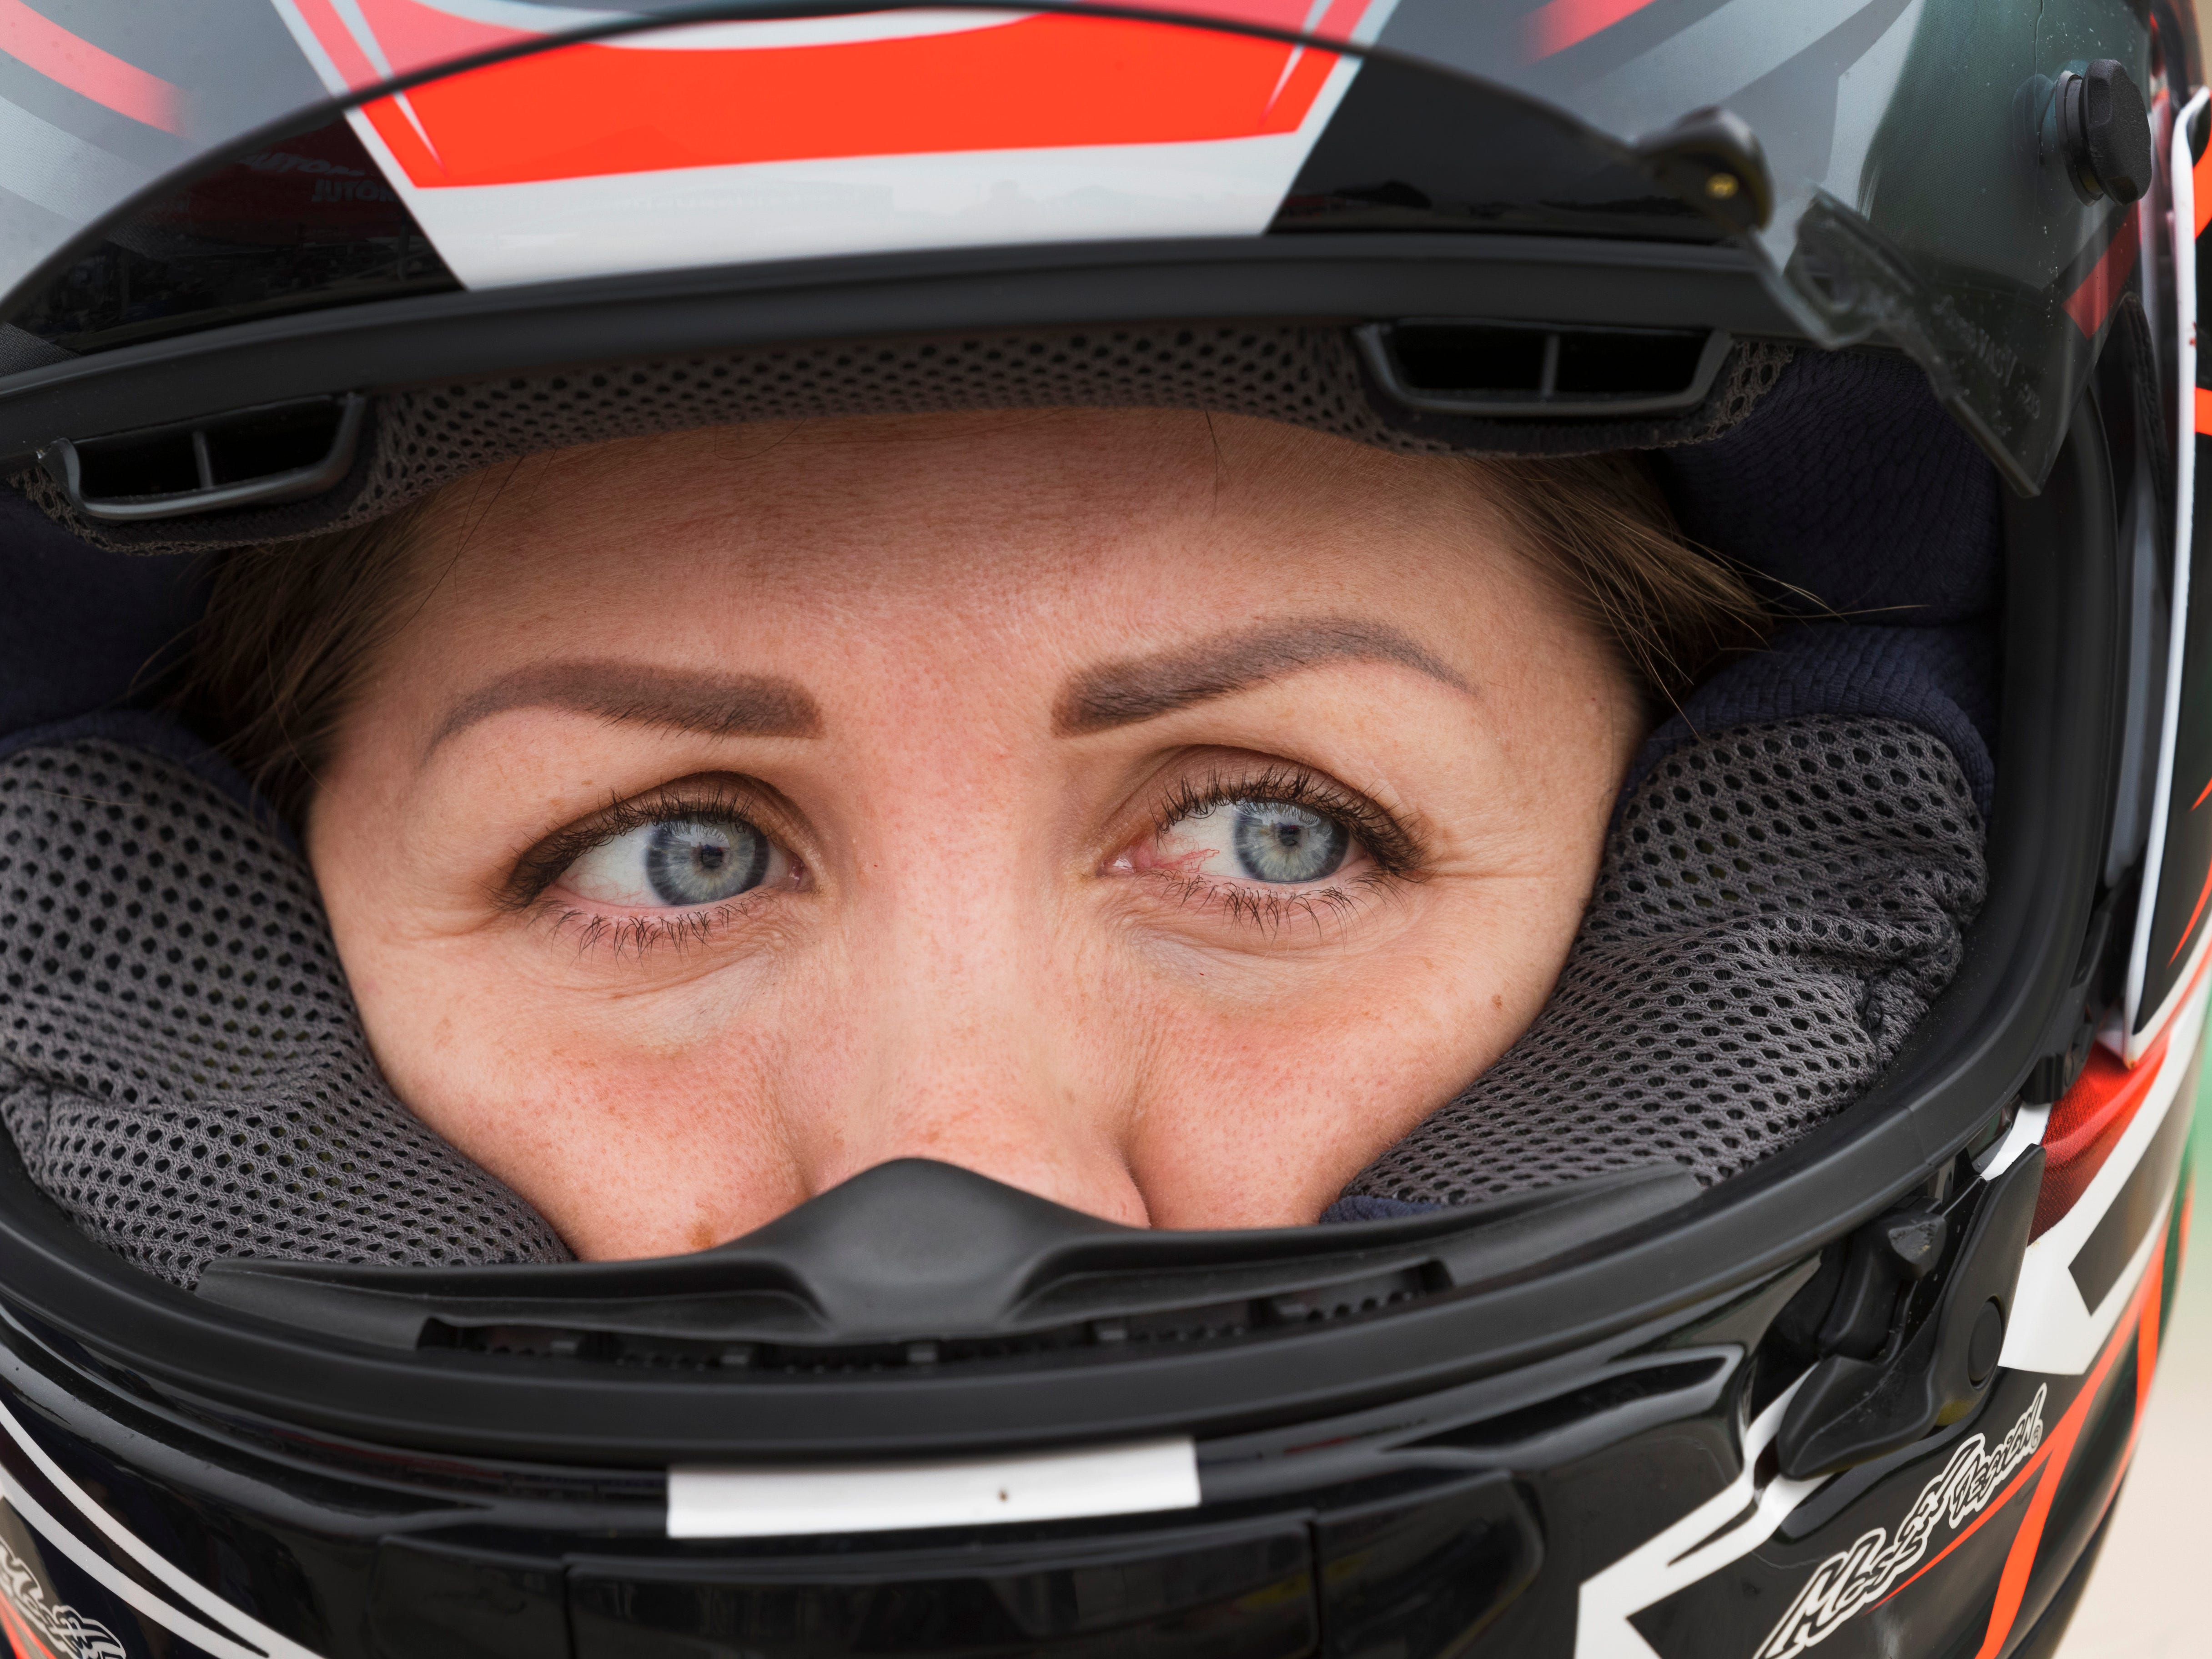 MotoAmerica Superstock 600 racer Caroline Olsen is shown before qualifying Saturday, June 2, 2018 at Road America in Elkhart Lake, Wis. The Norewgian racers is starting her comeback after being seriously inured in a crash at New Jersey Motorsports Park in Sept. 2017. 